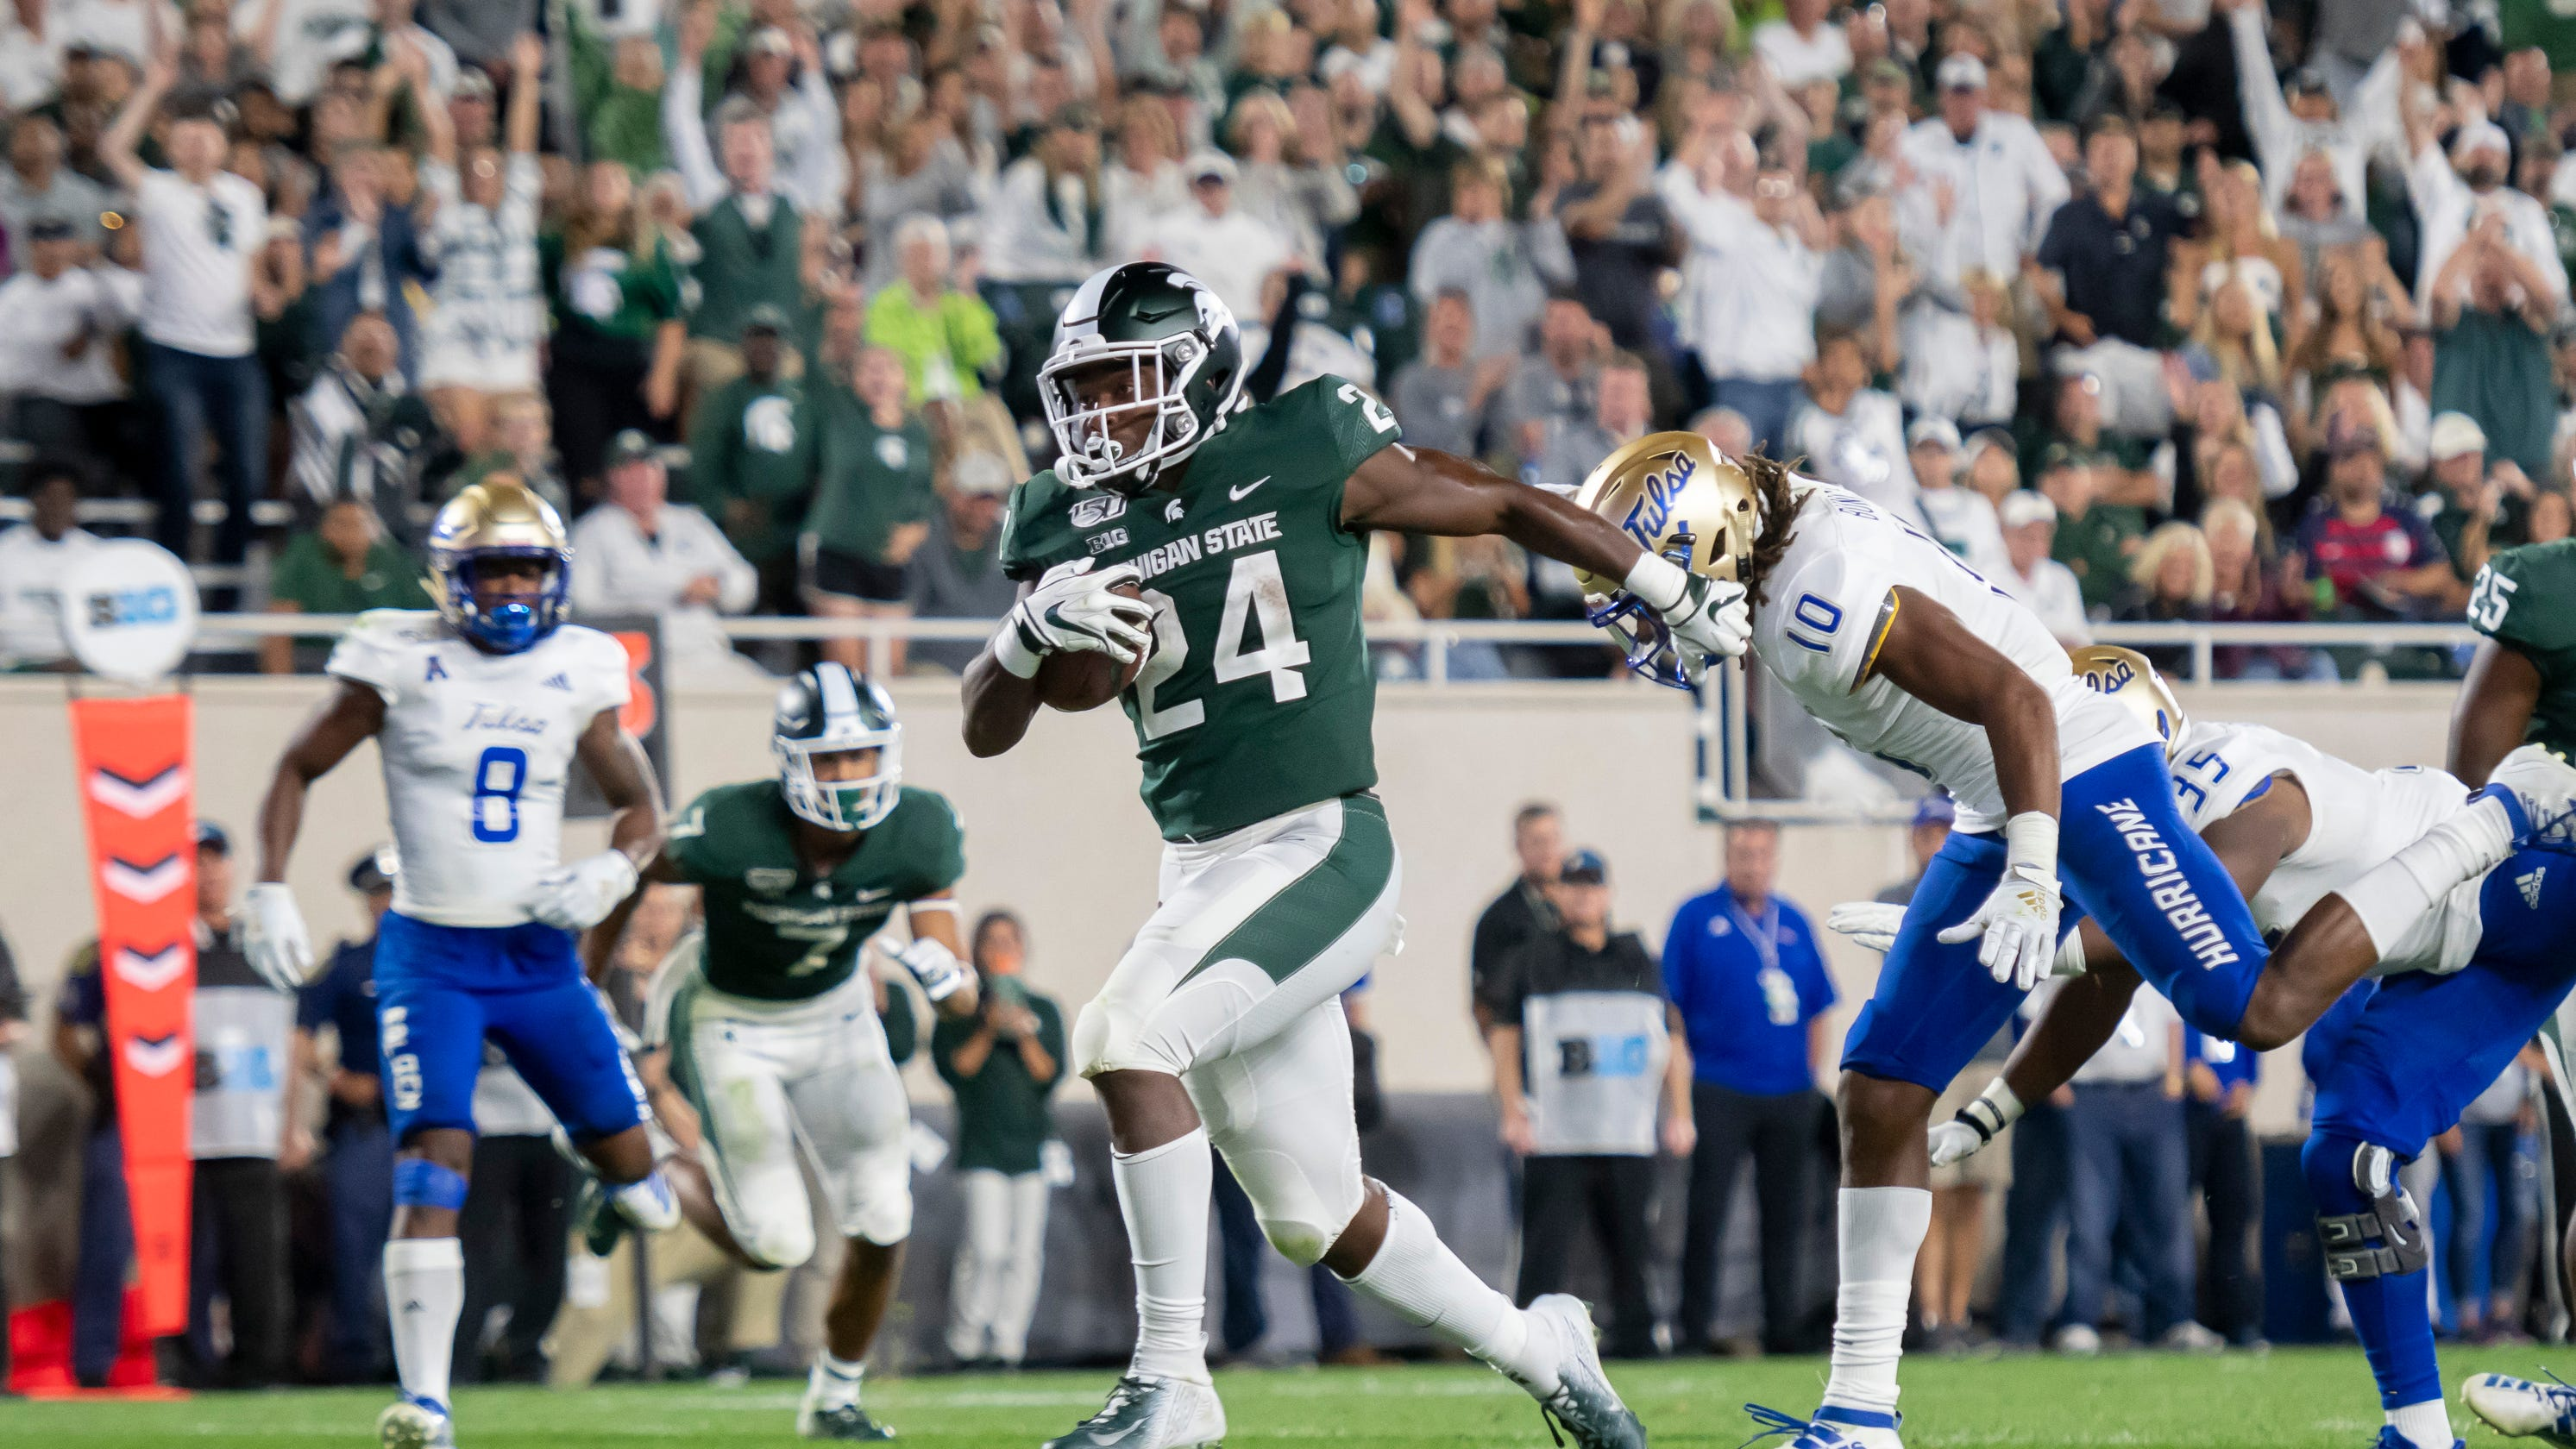 Michigan State mailbag: Why not Devontae Dobbs? More touches